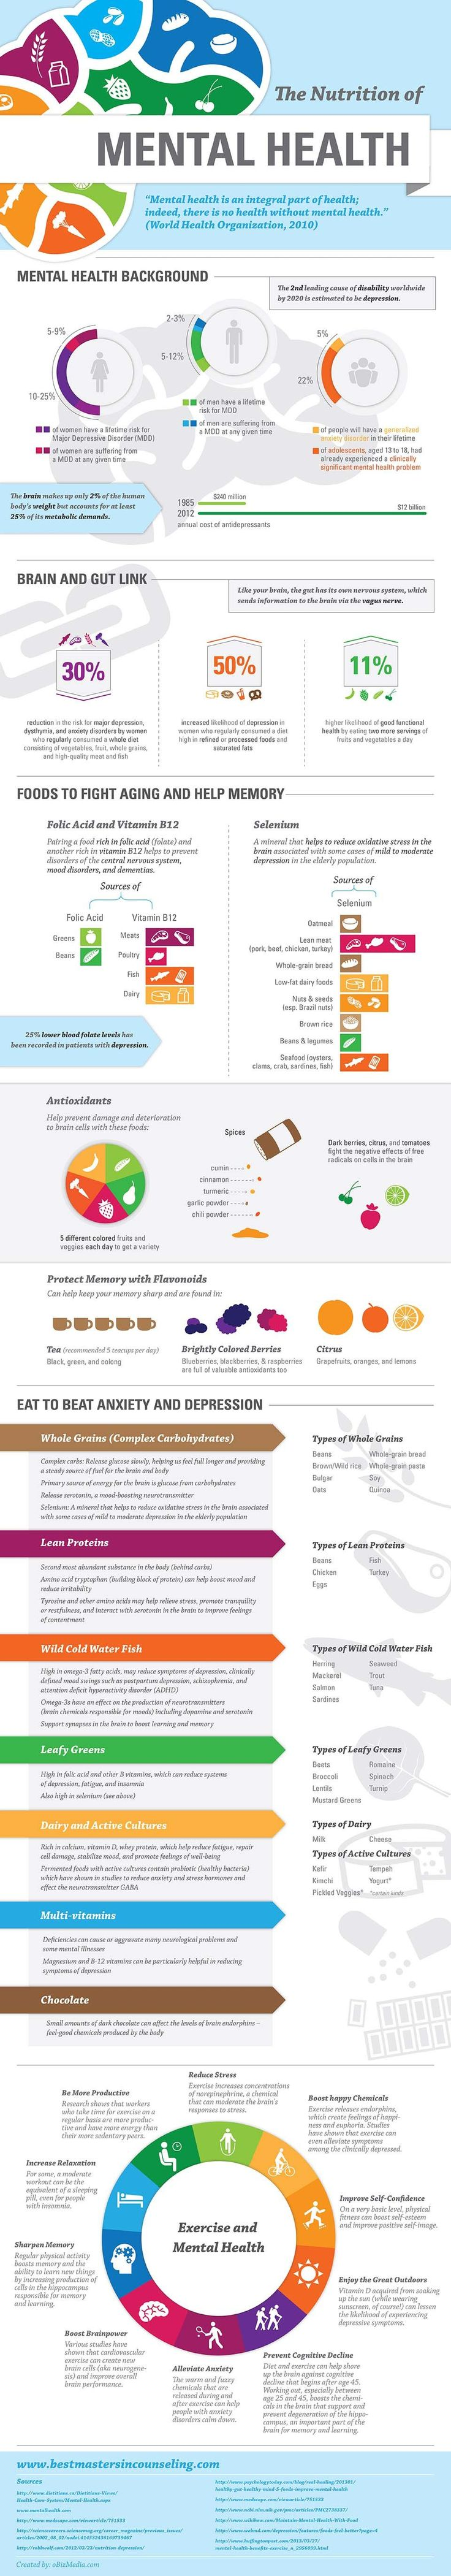 The Nutrition of Mental Health: #mental #health #nutrition